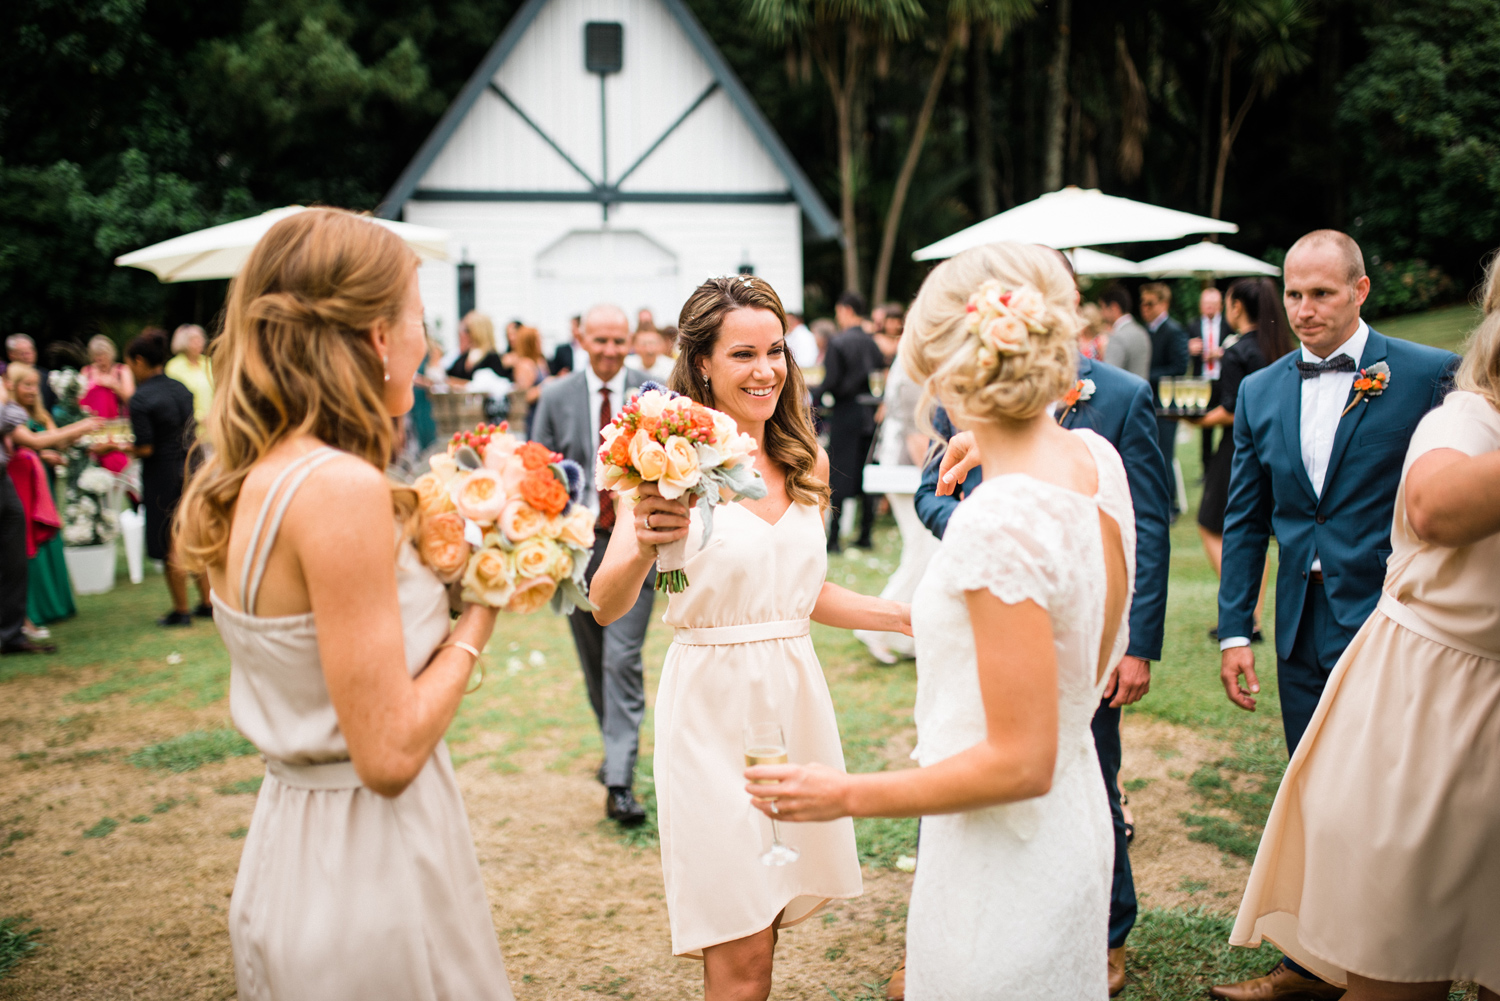 new-zealand-wedding-film-photographer-ryan-flynn-0034.JPG